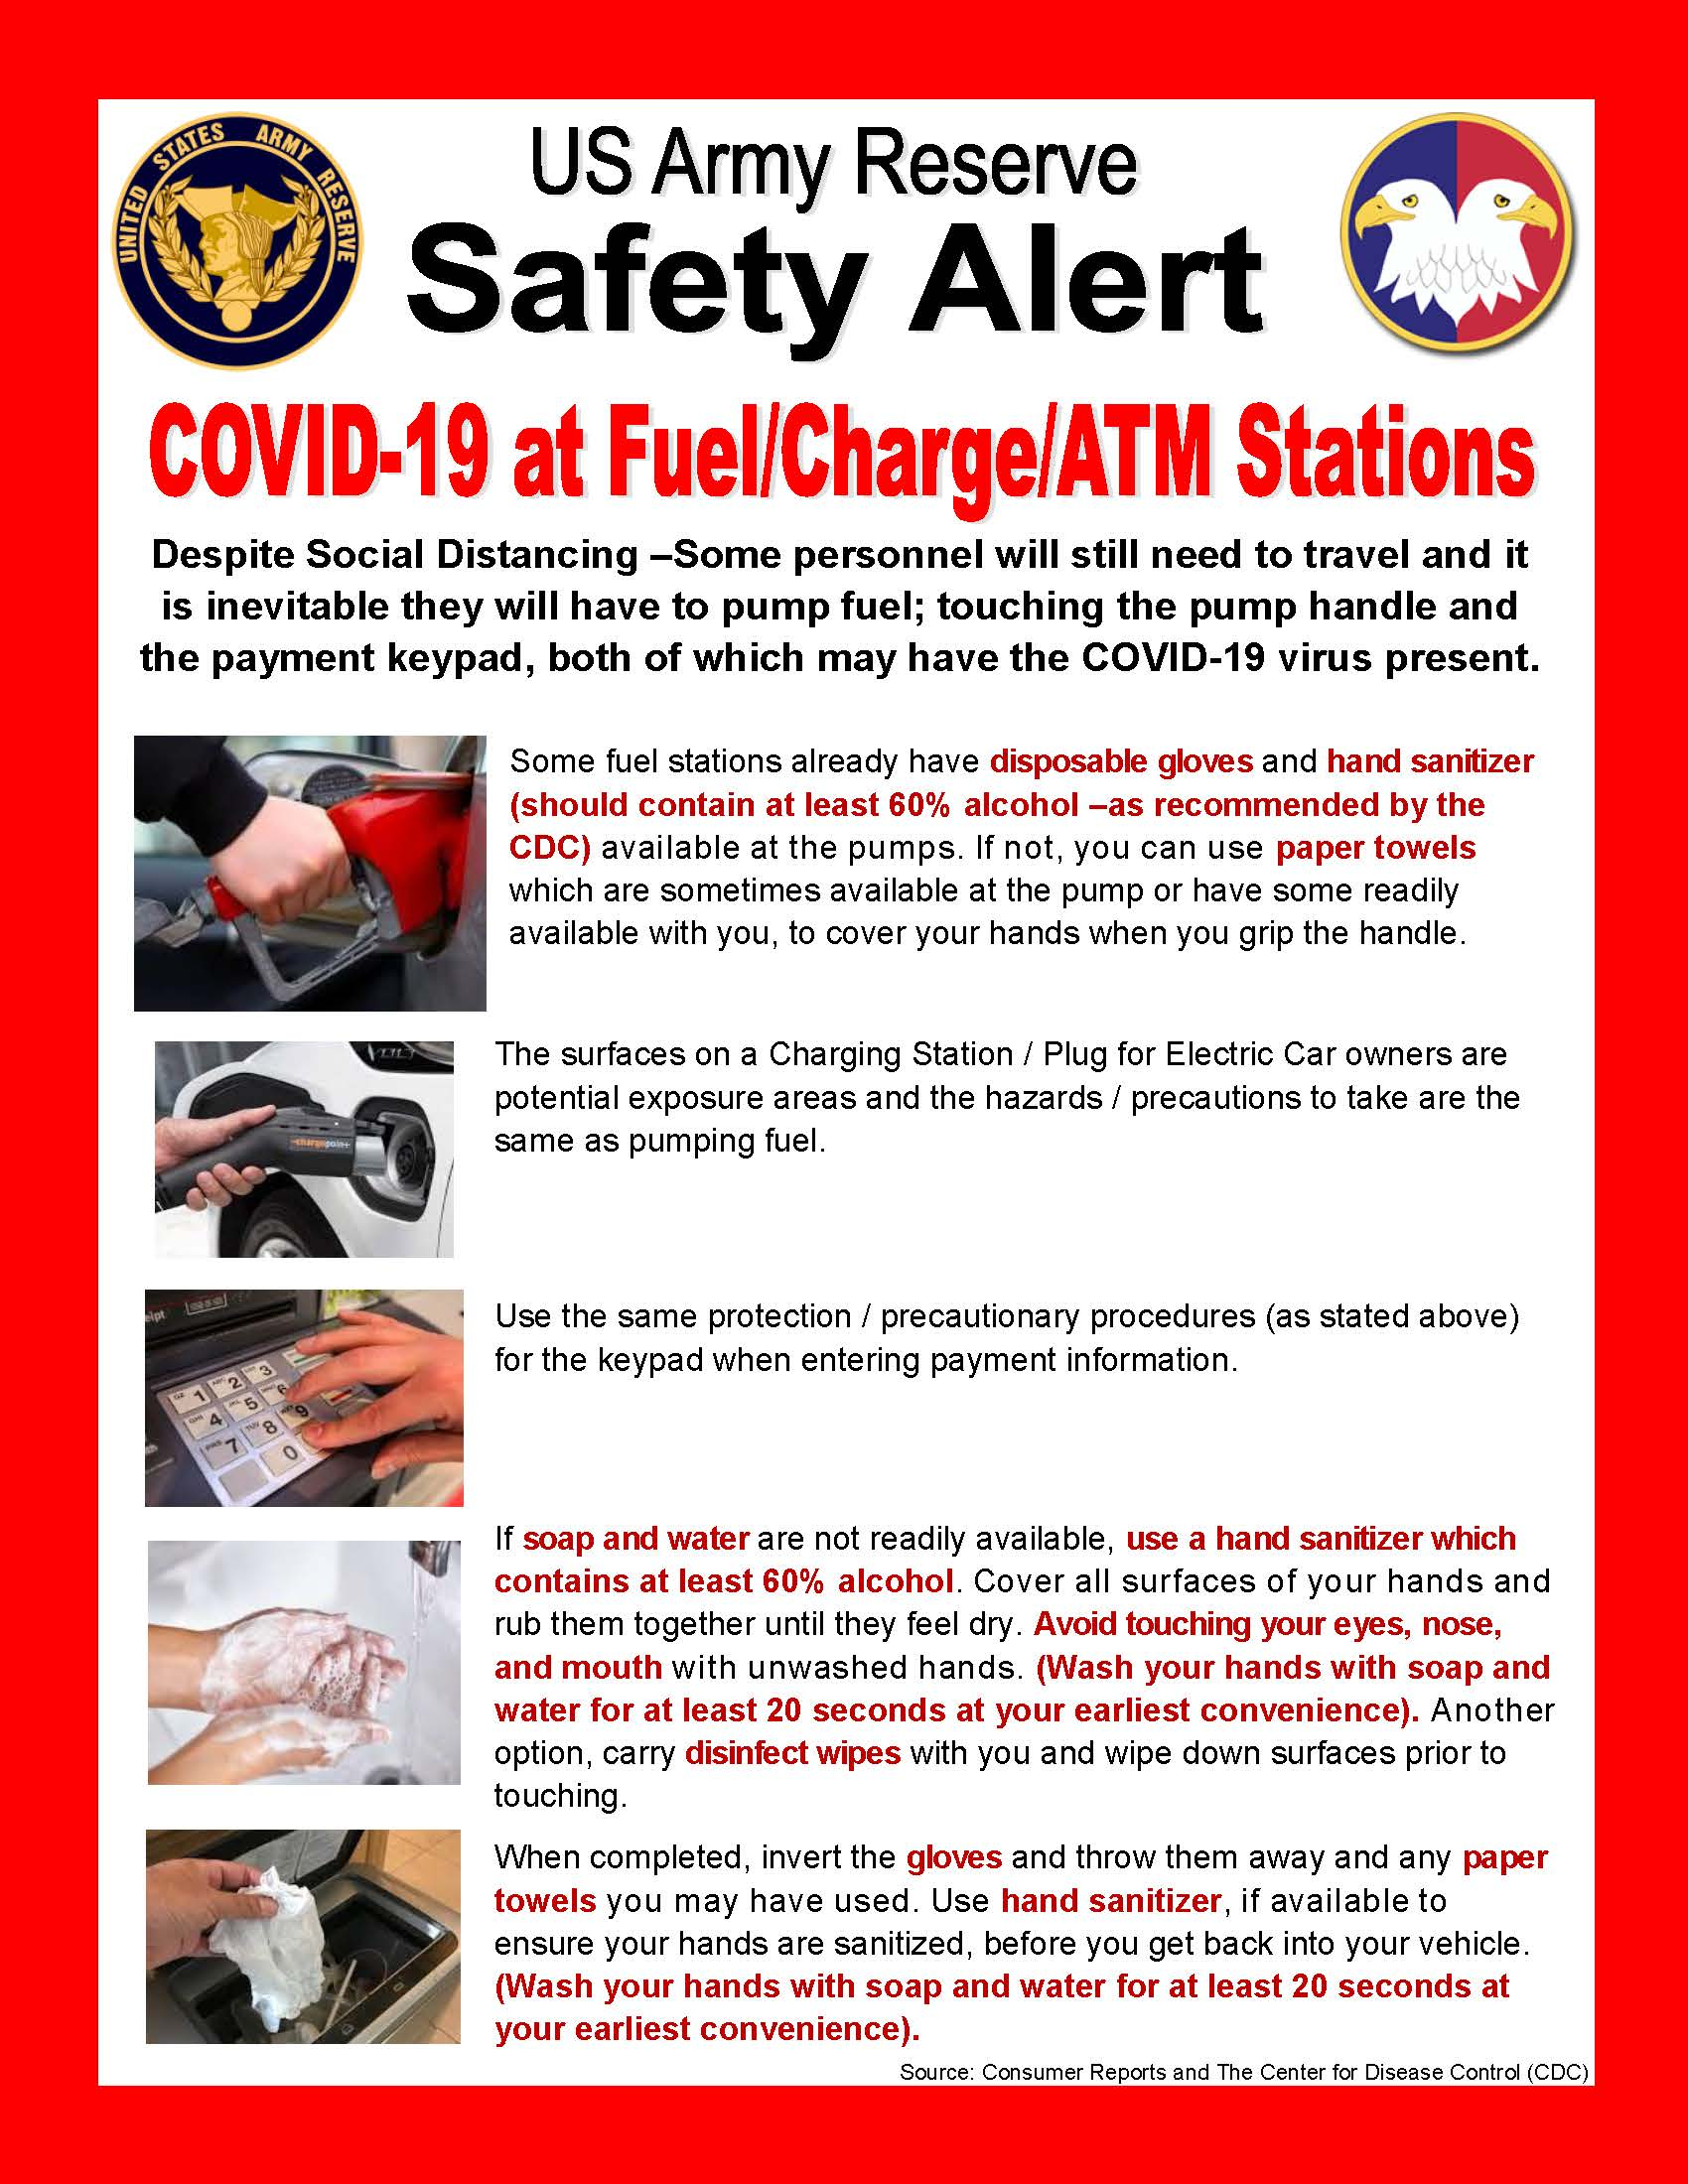 Safety Alert: COVID-19 at Fuel/Charge/ATM Stations